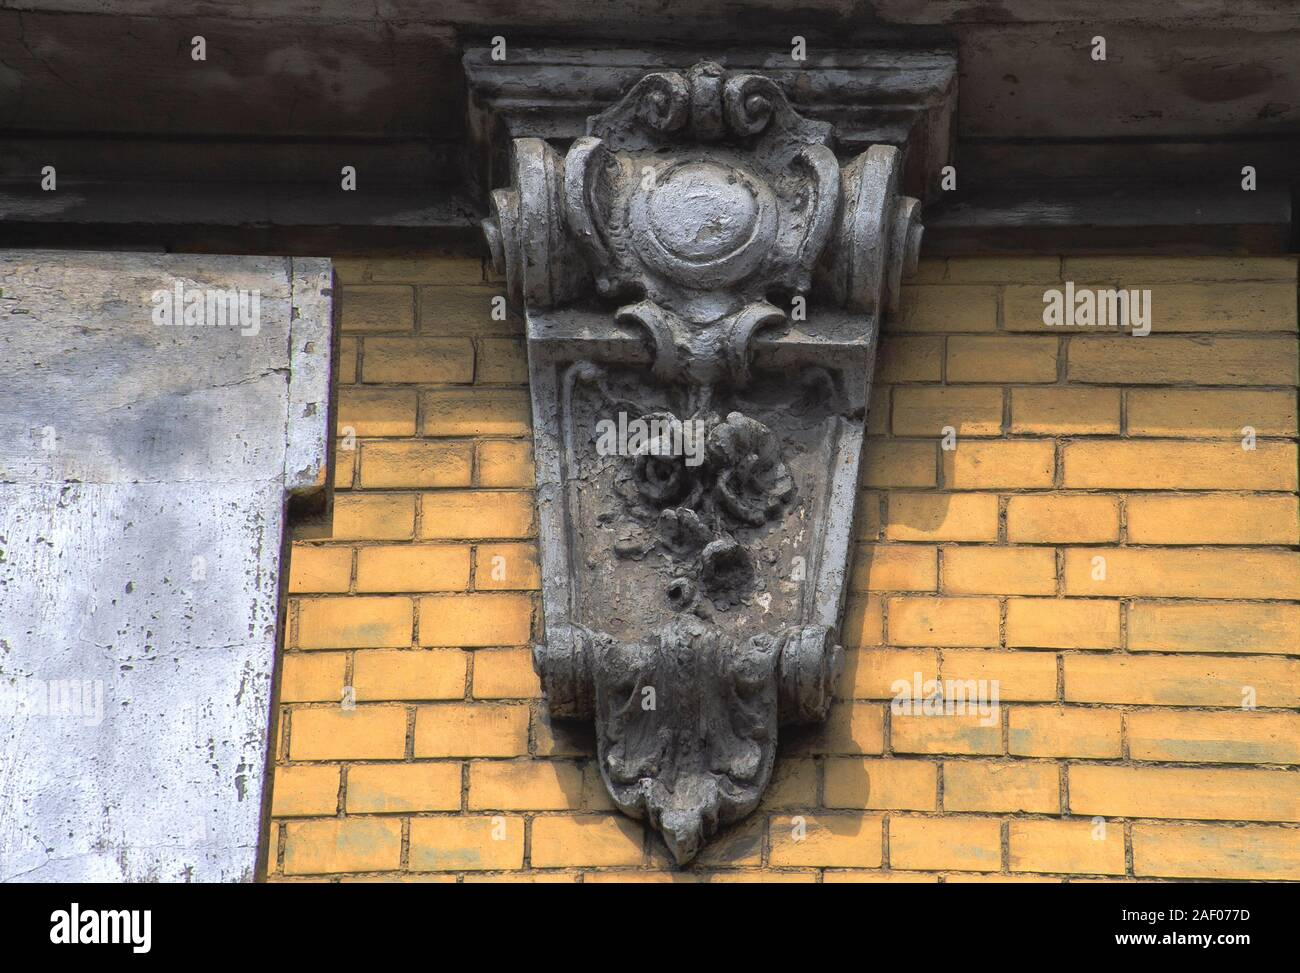 Xx Details Xx High Resolution Stock Photography And Images Alamy